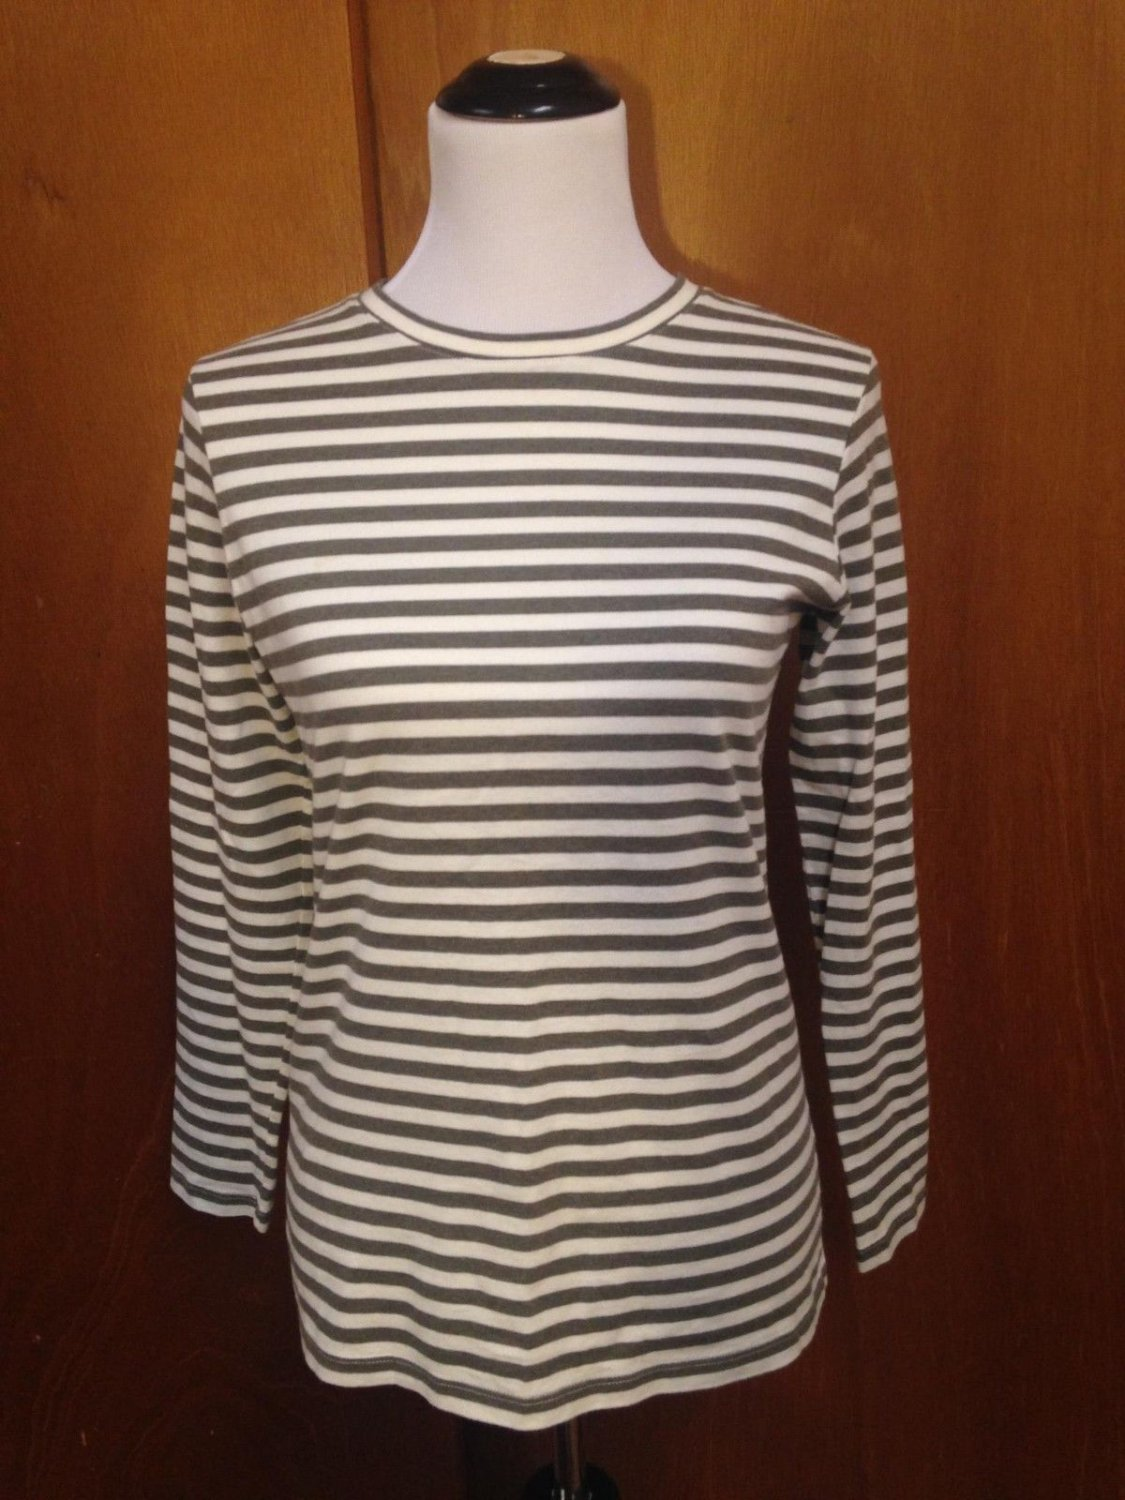 Women's BARNEYS NY White & Brown Striped 100% Cotton Long Sleeved T-shirt SZ L